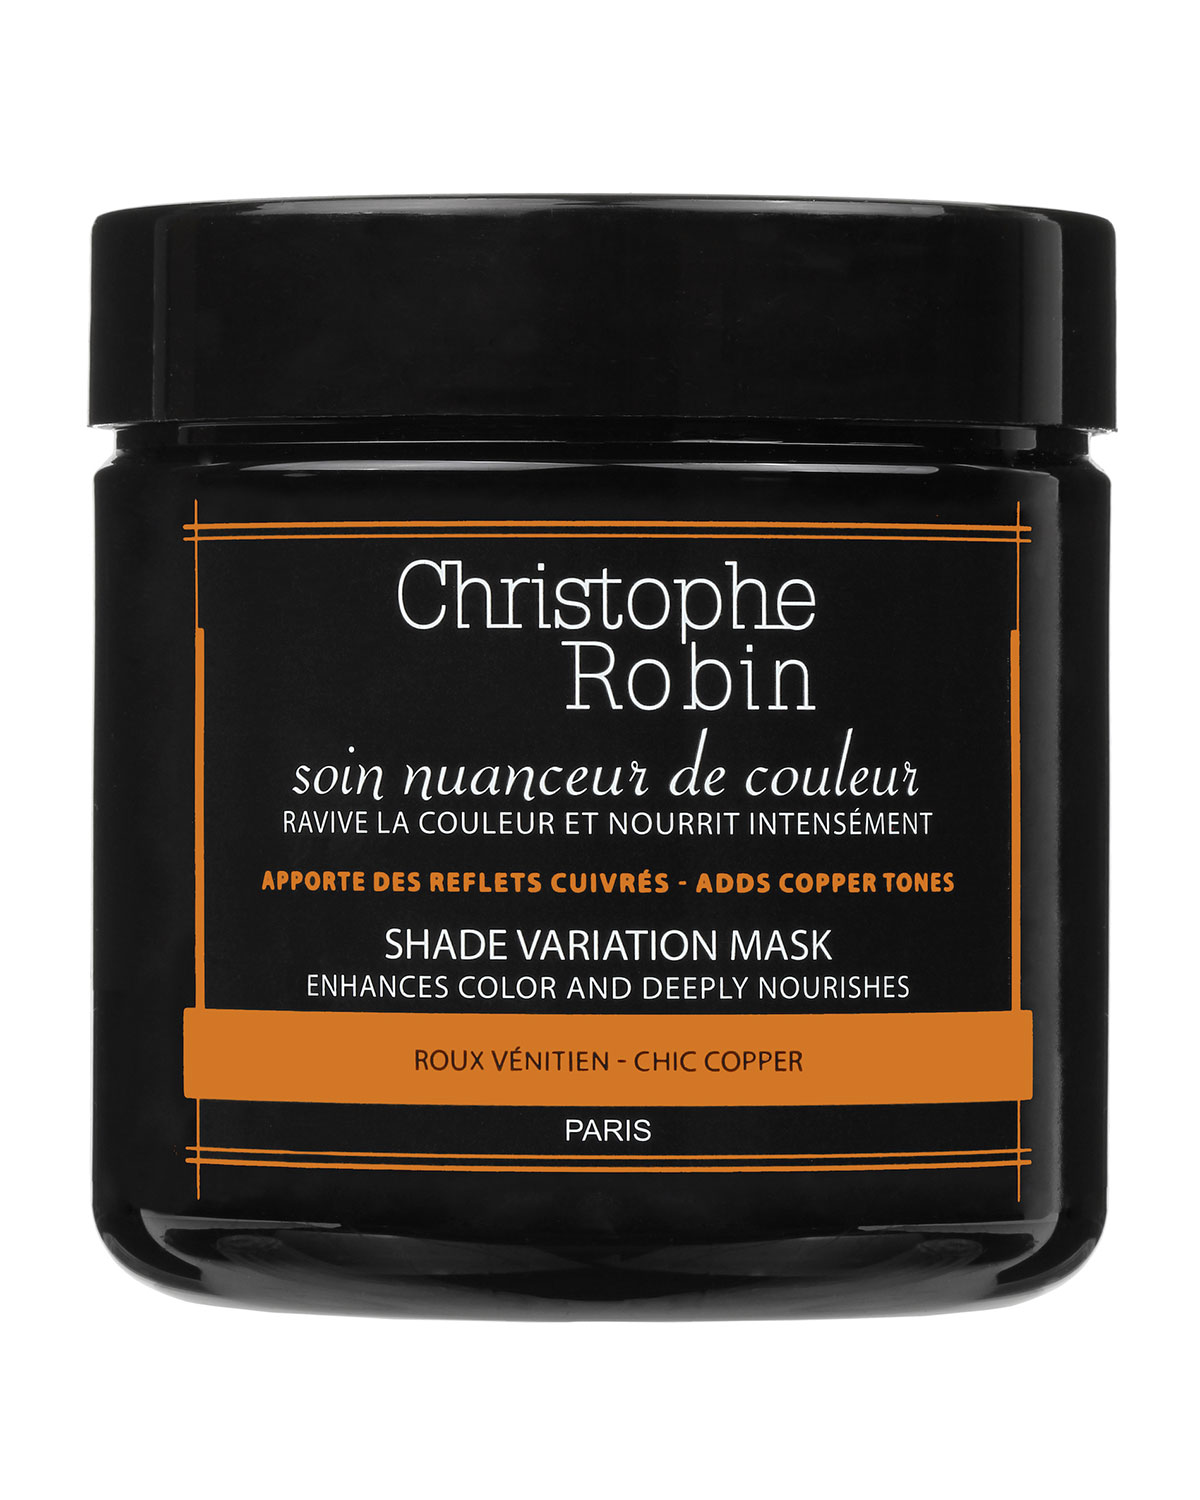 8.4 oz. Shade Variation Mask in Chic Copper